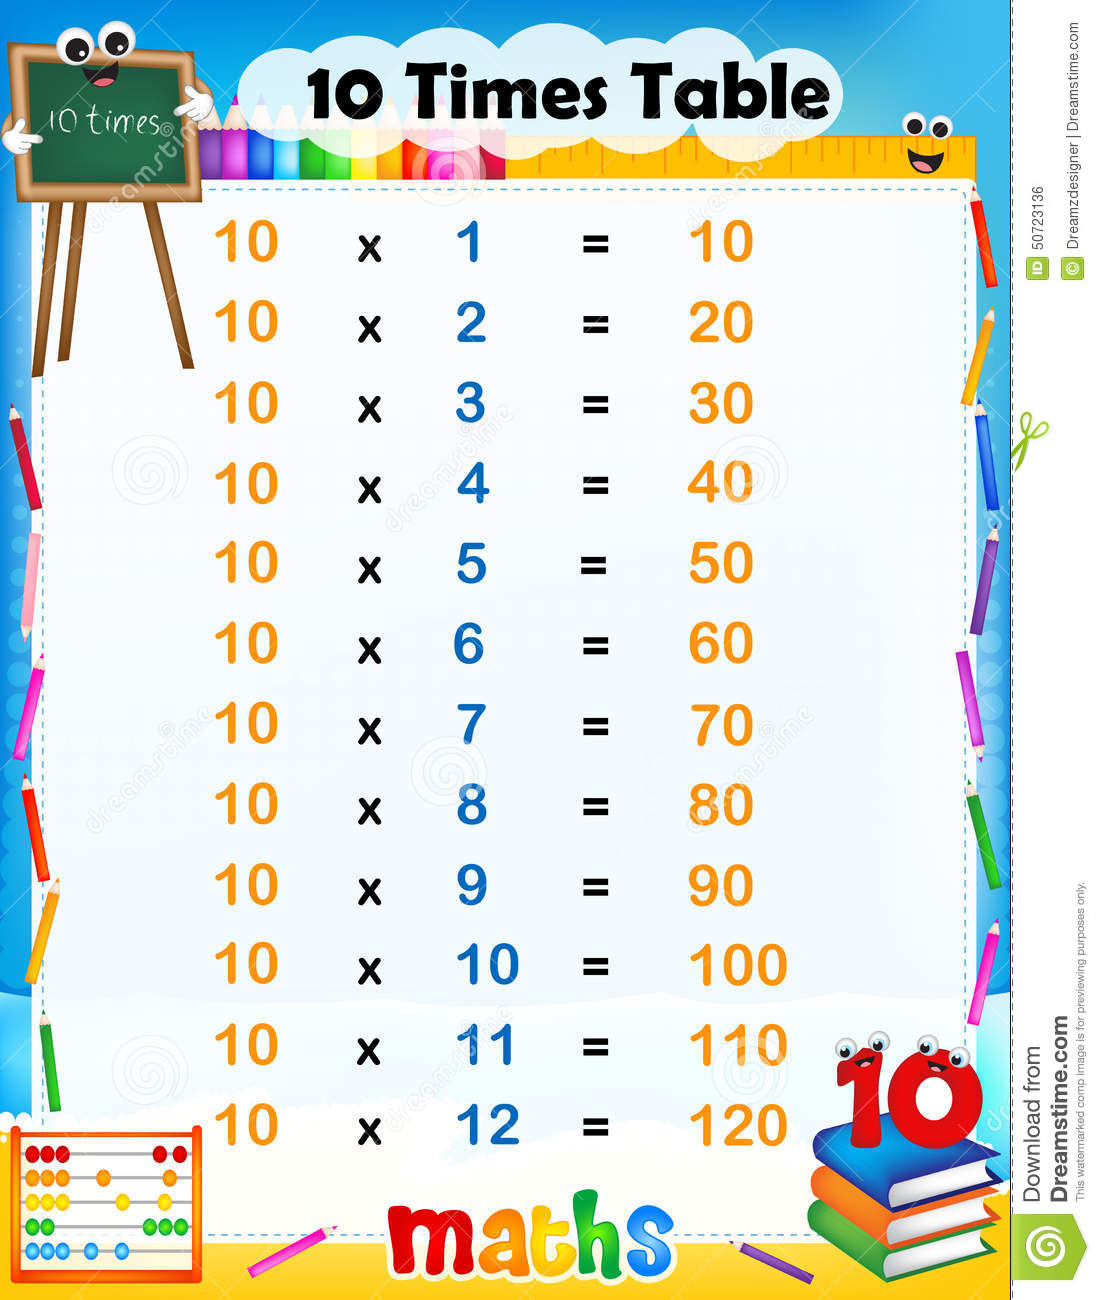 10 Times Table Stock Vector